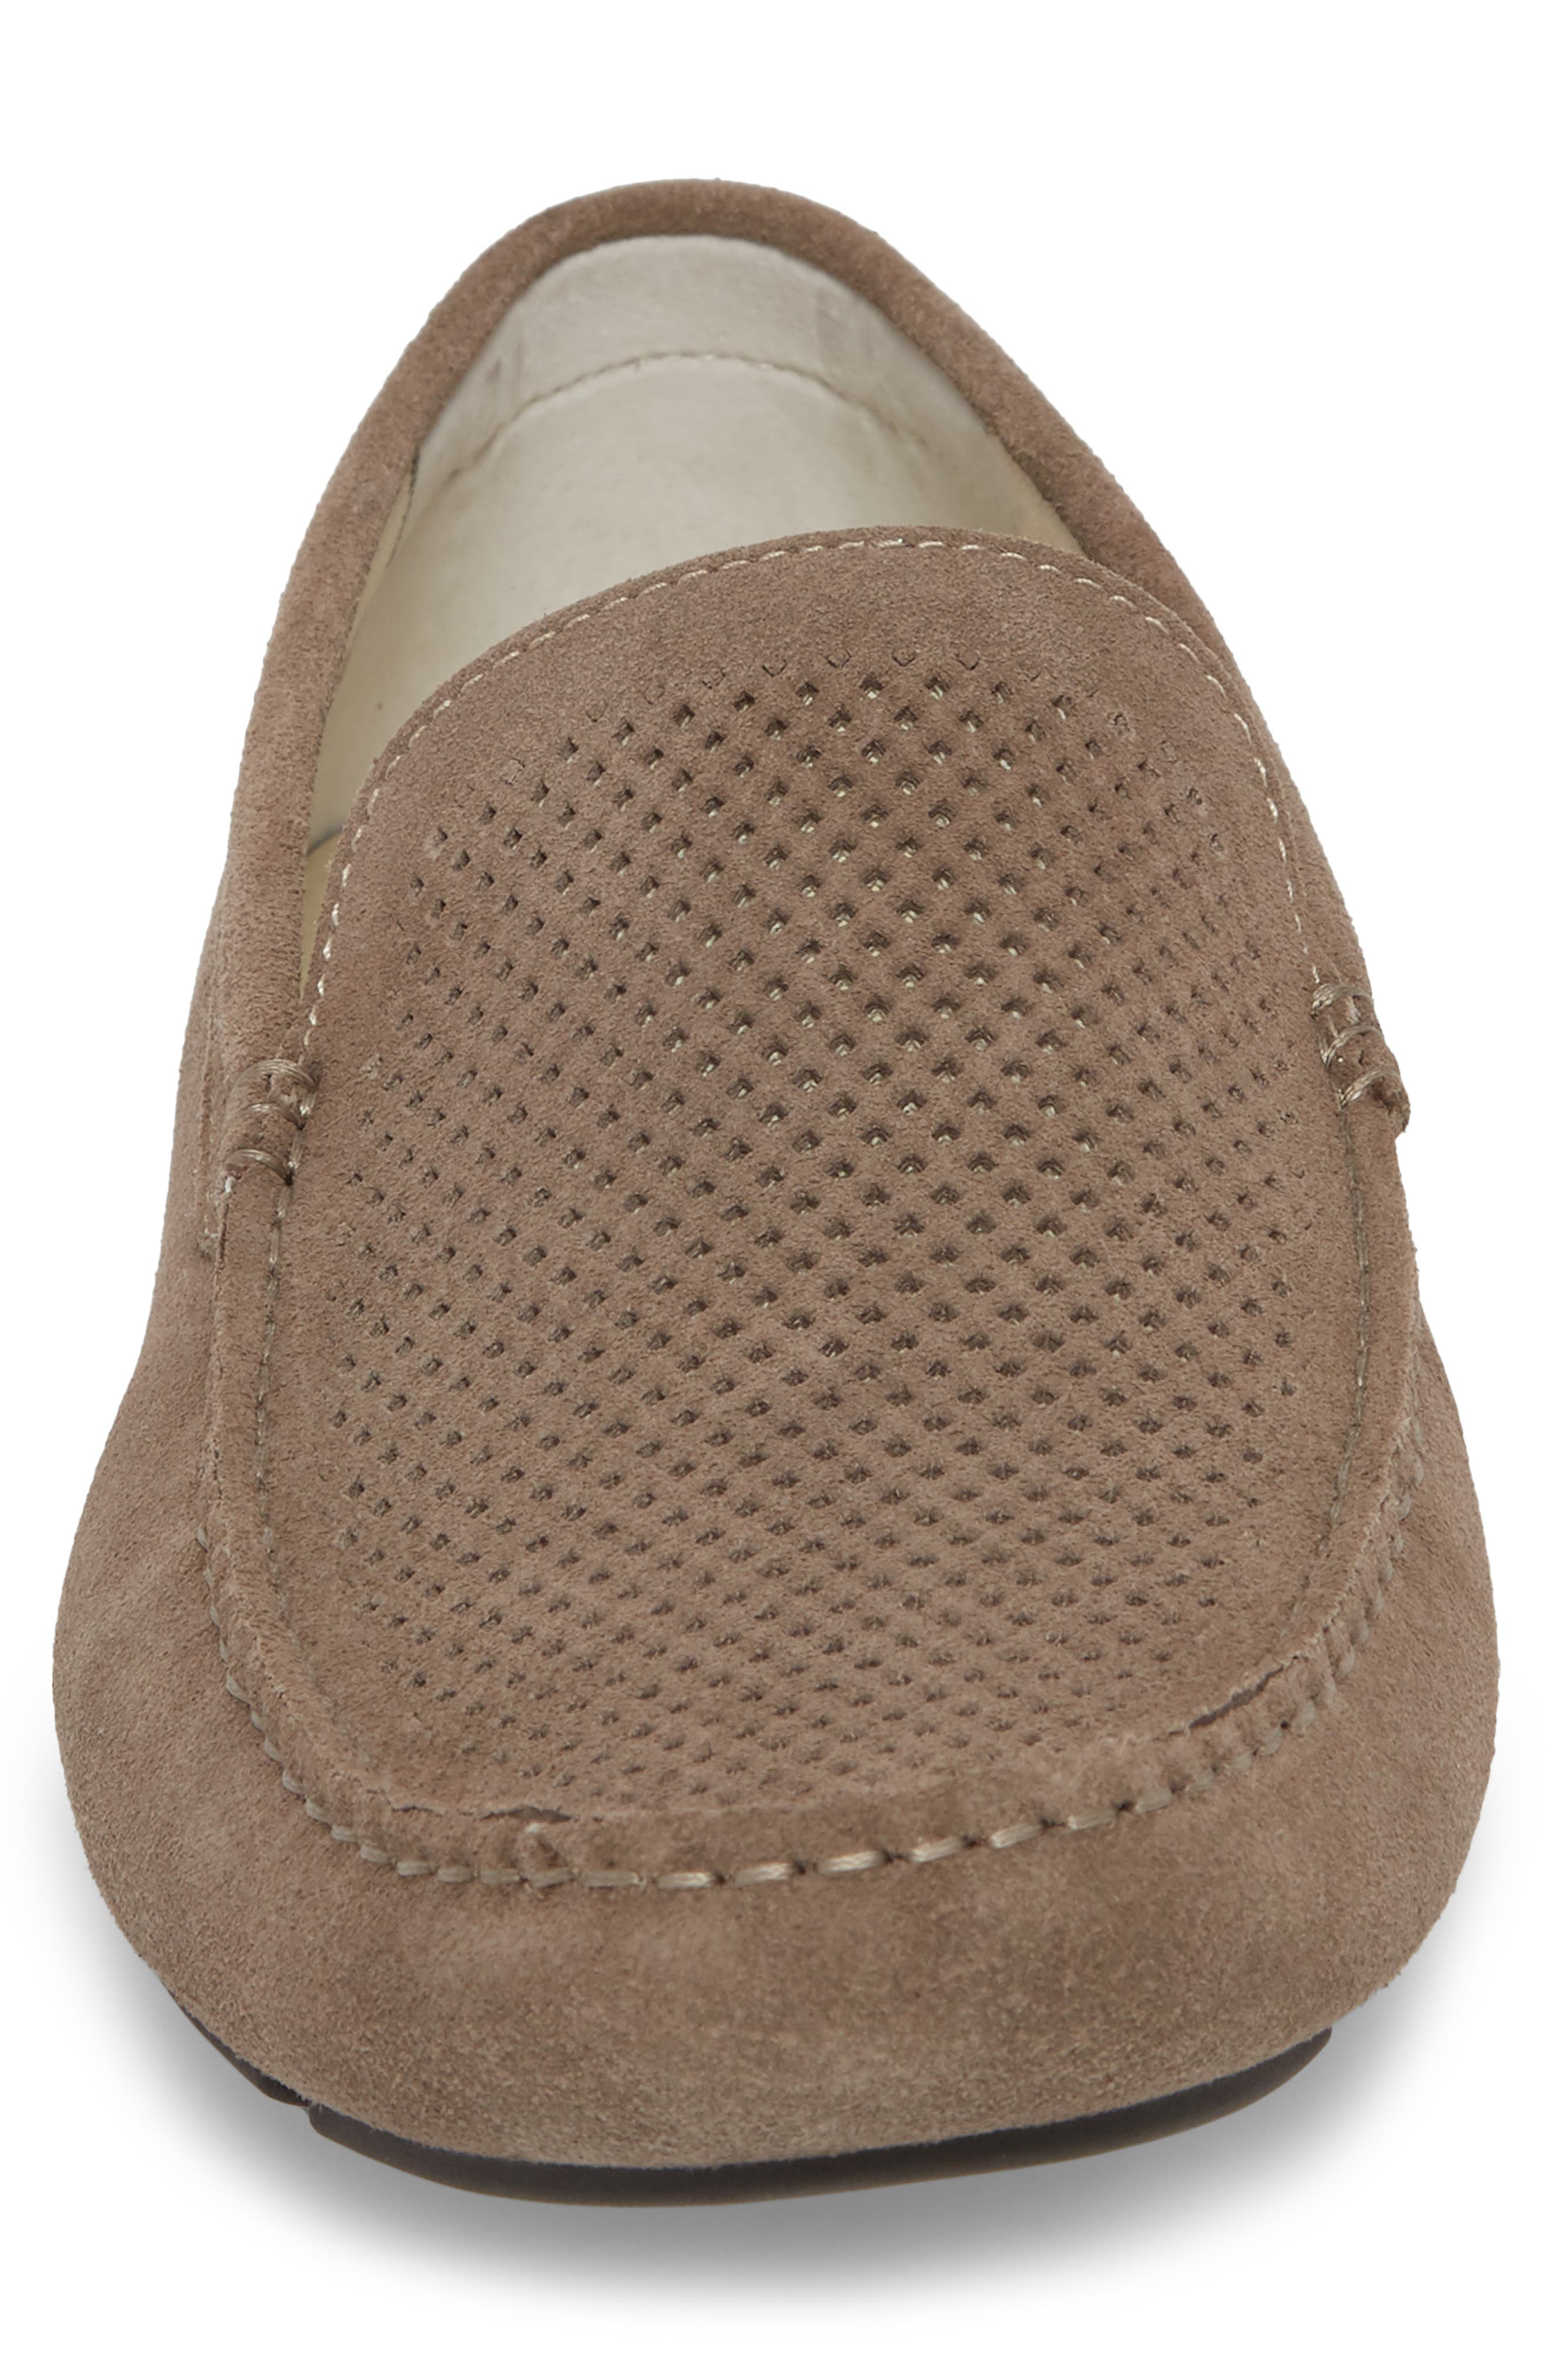 Scottsdale Perforated Driving Moccasin,                             Alternate thumbnail 4, color,                             Grey Suede